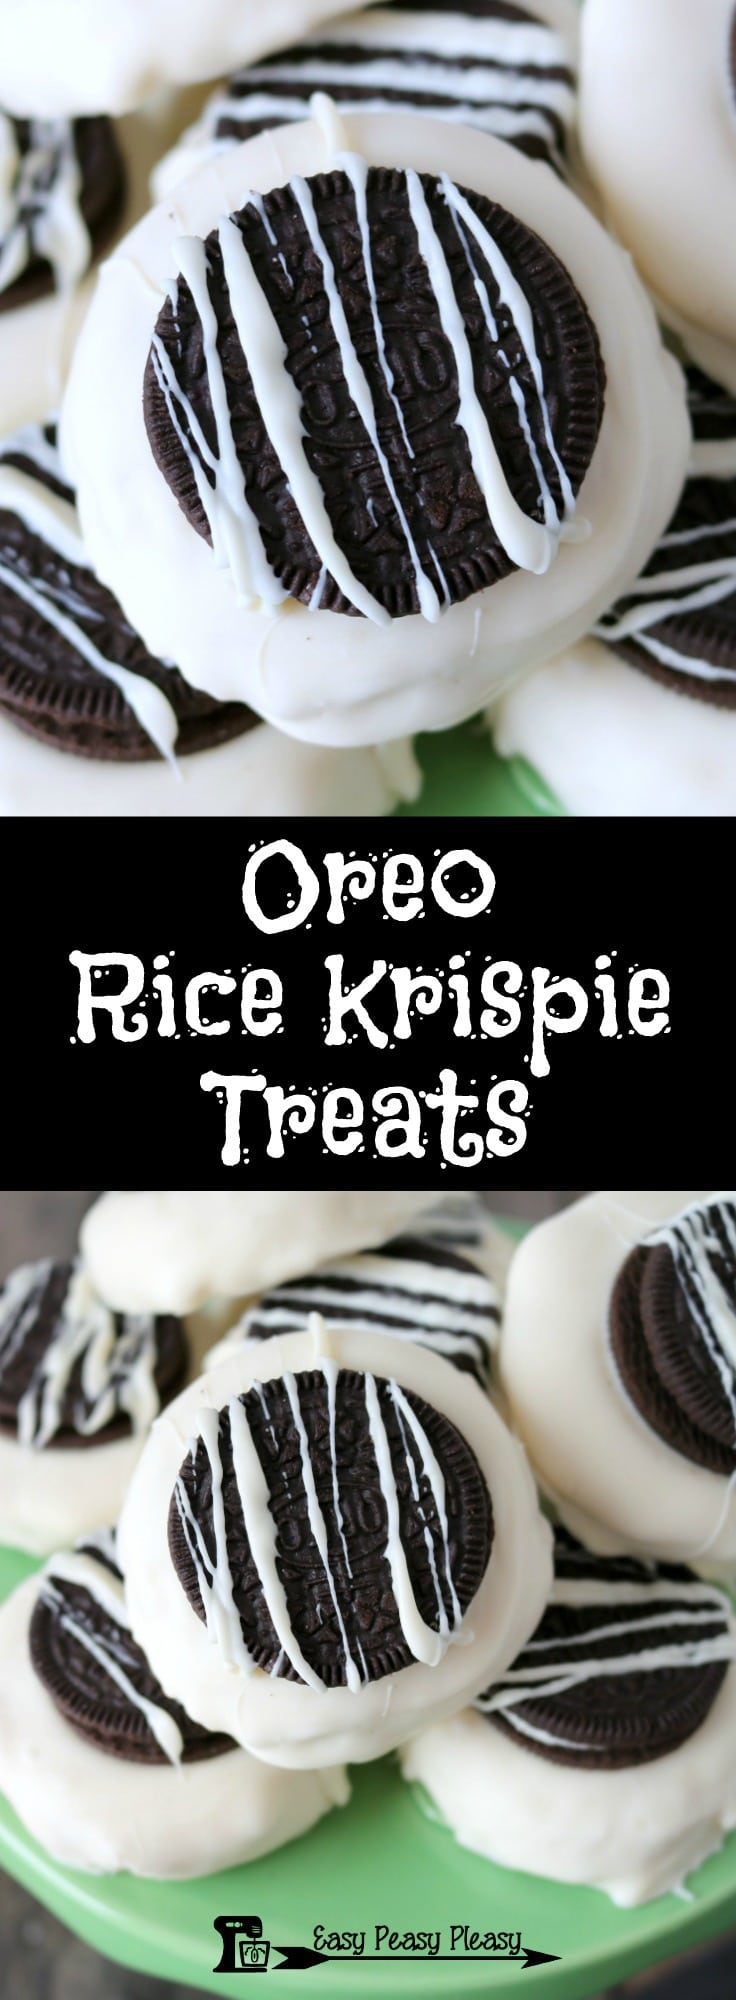 Easy 5 Ingredient Oreo Rice Krispie Treats.